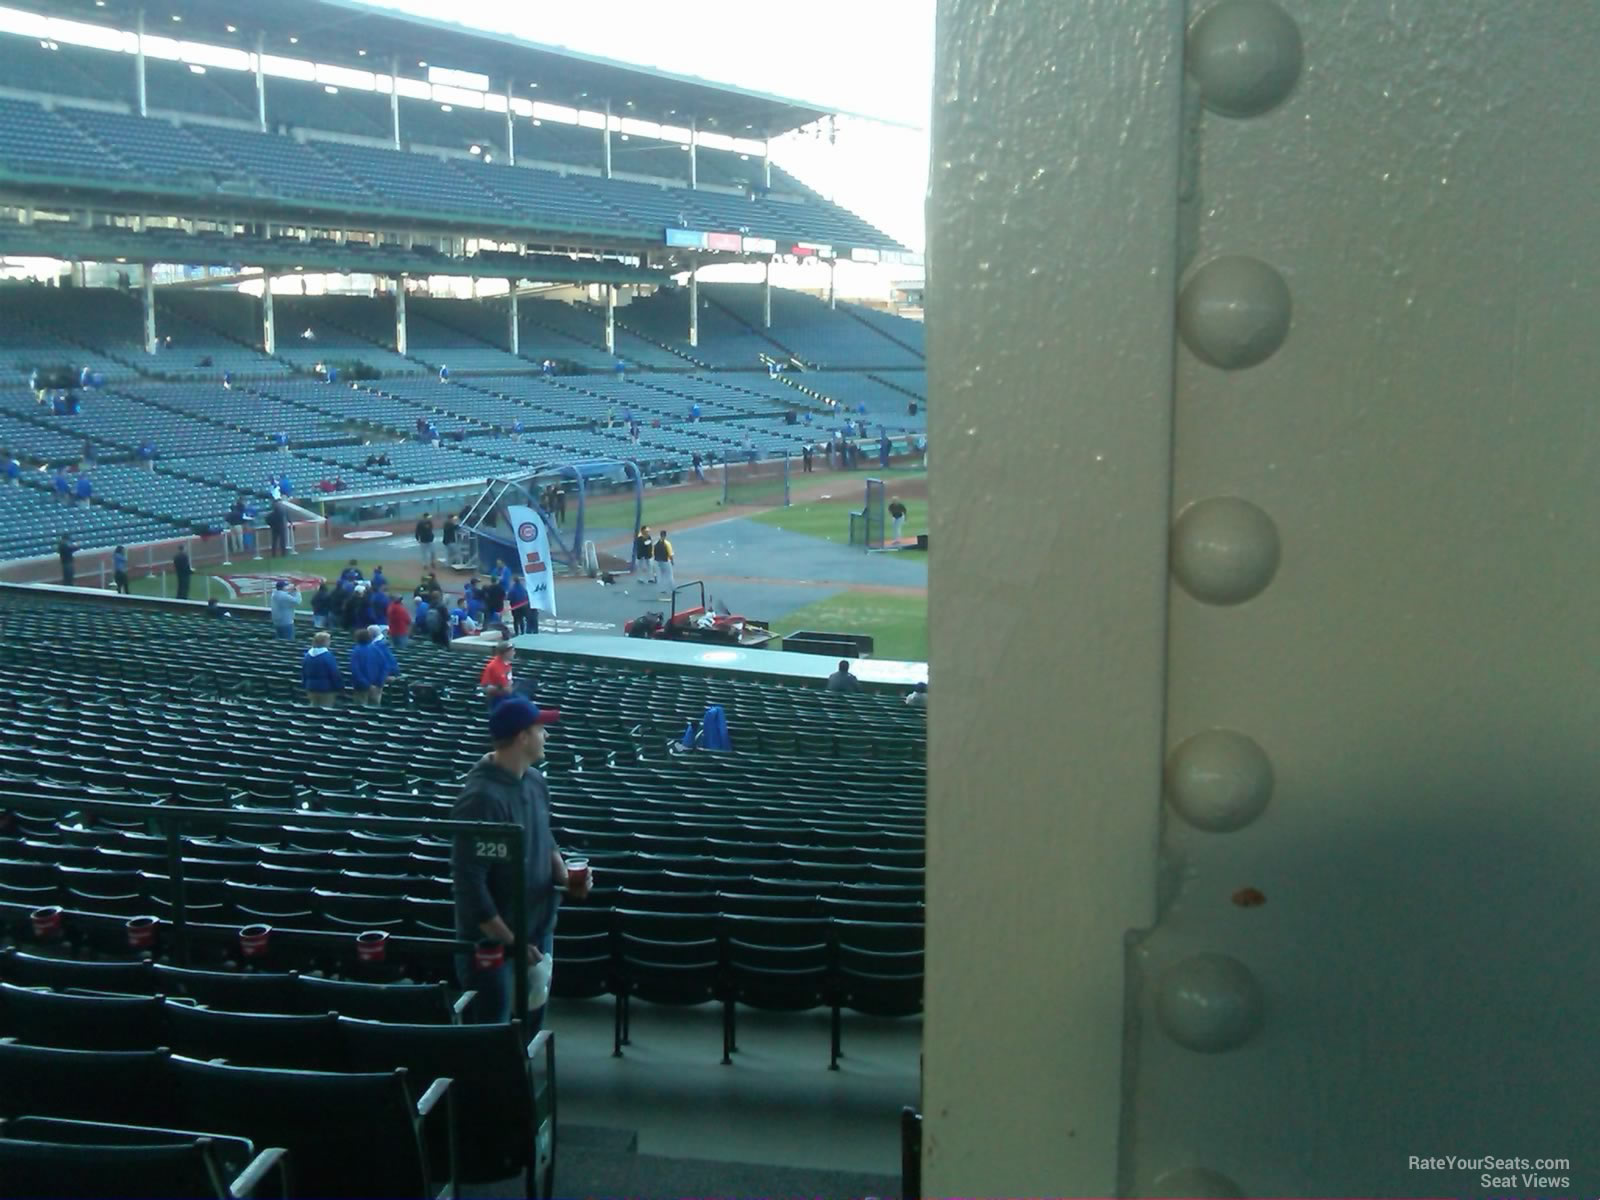 Wrigley Field Section 229 Row 7 Seat 1 1 on 4 9 2014 S